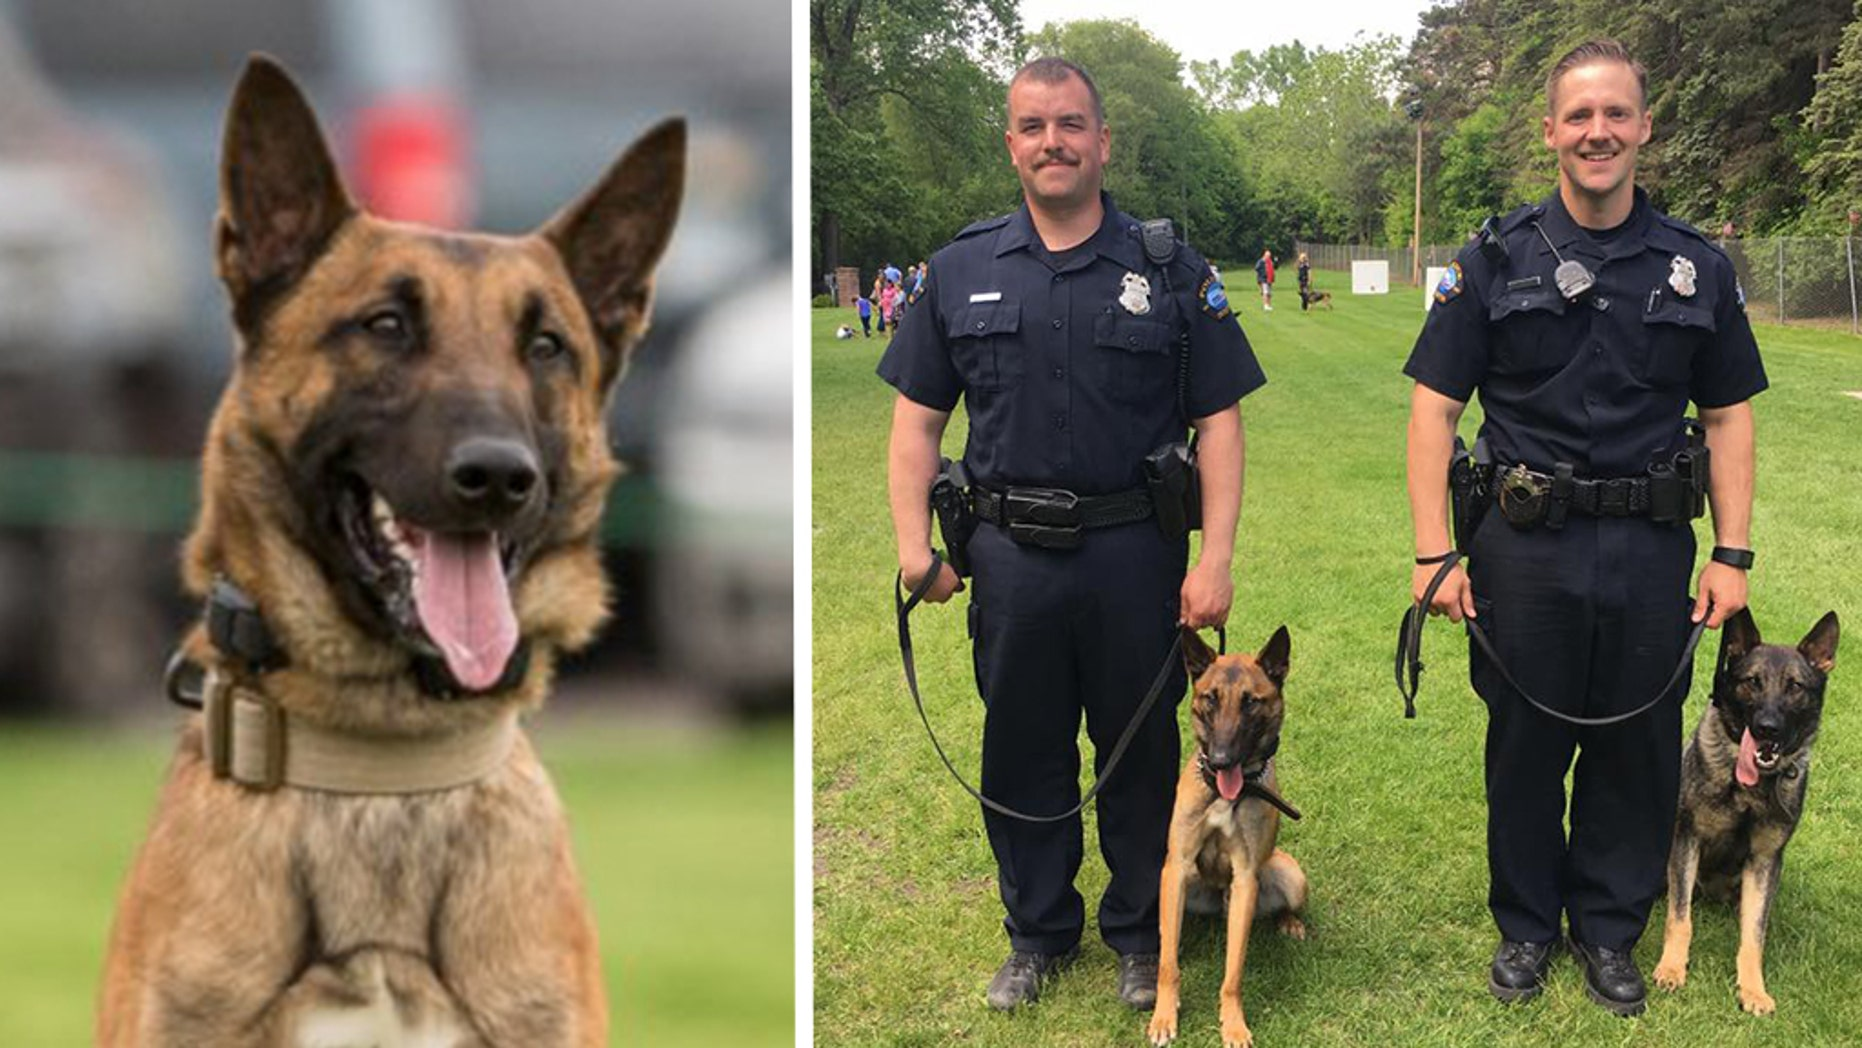 K-9 Haas left, was killed on Sunday during a shoot-out with a suspect in Duluth, Minnesota, police said.